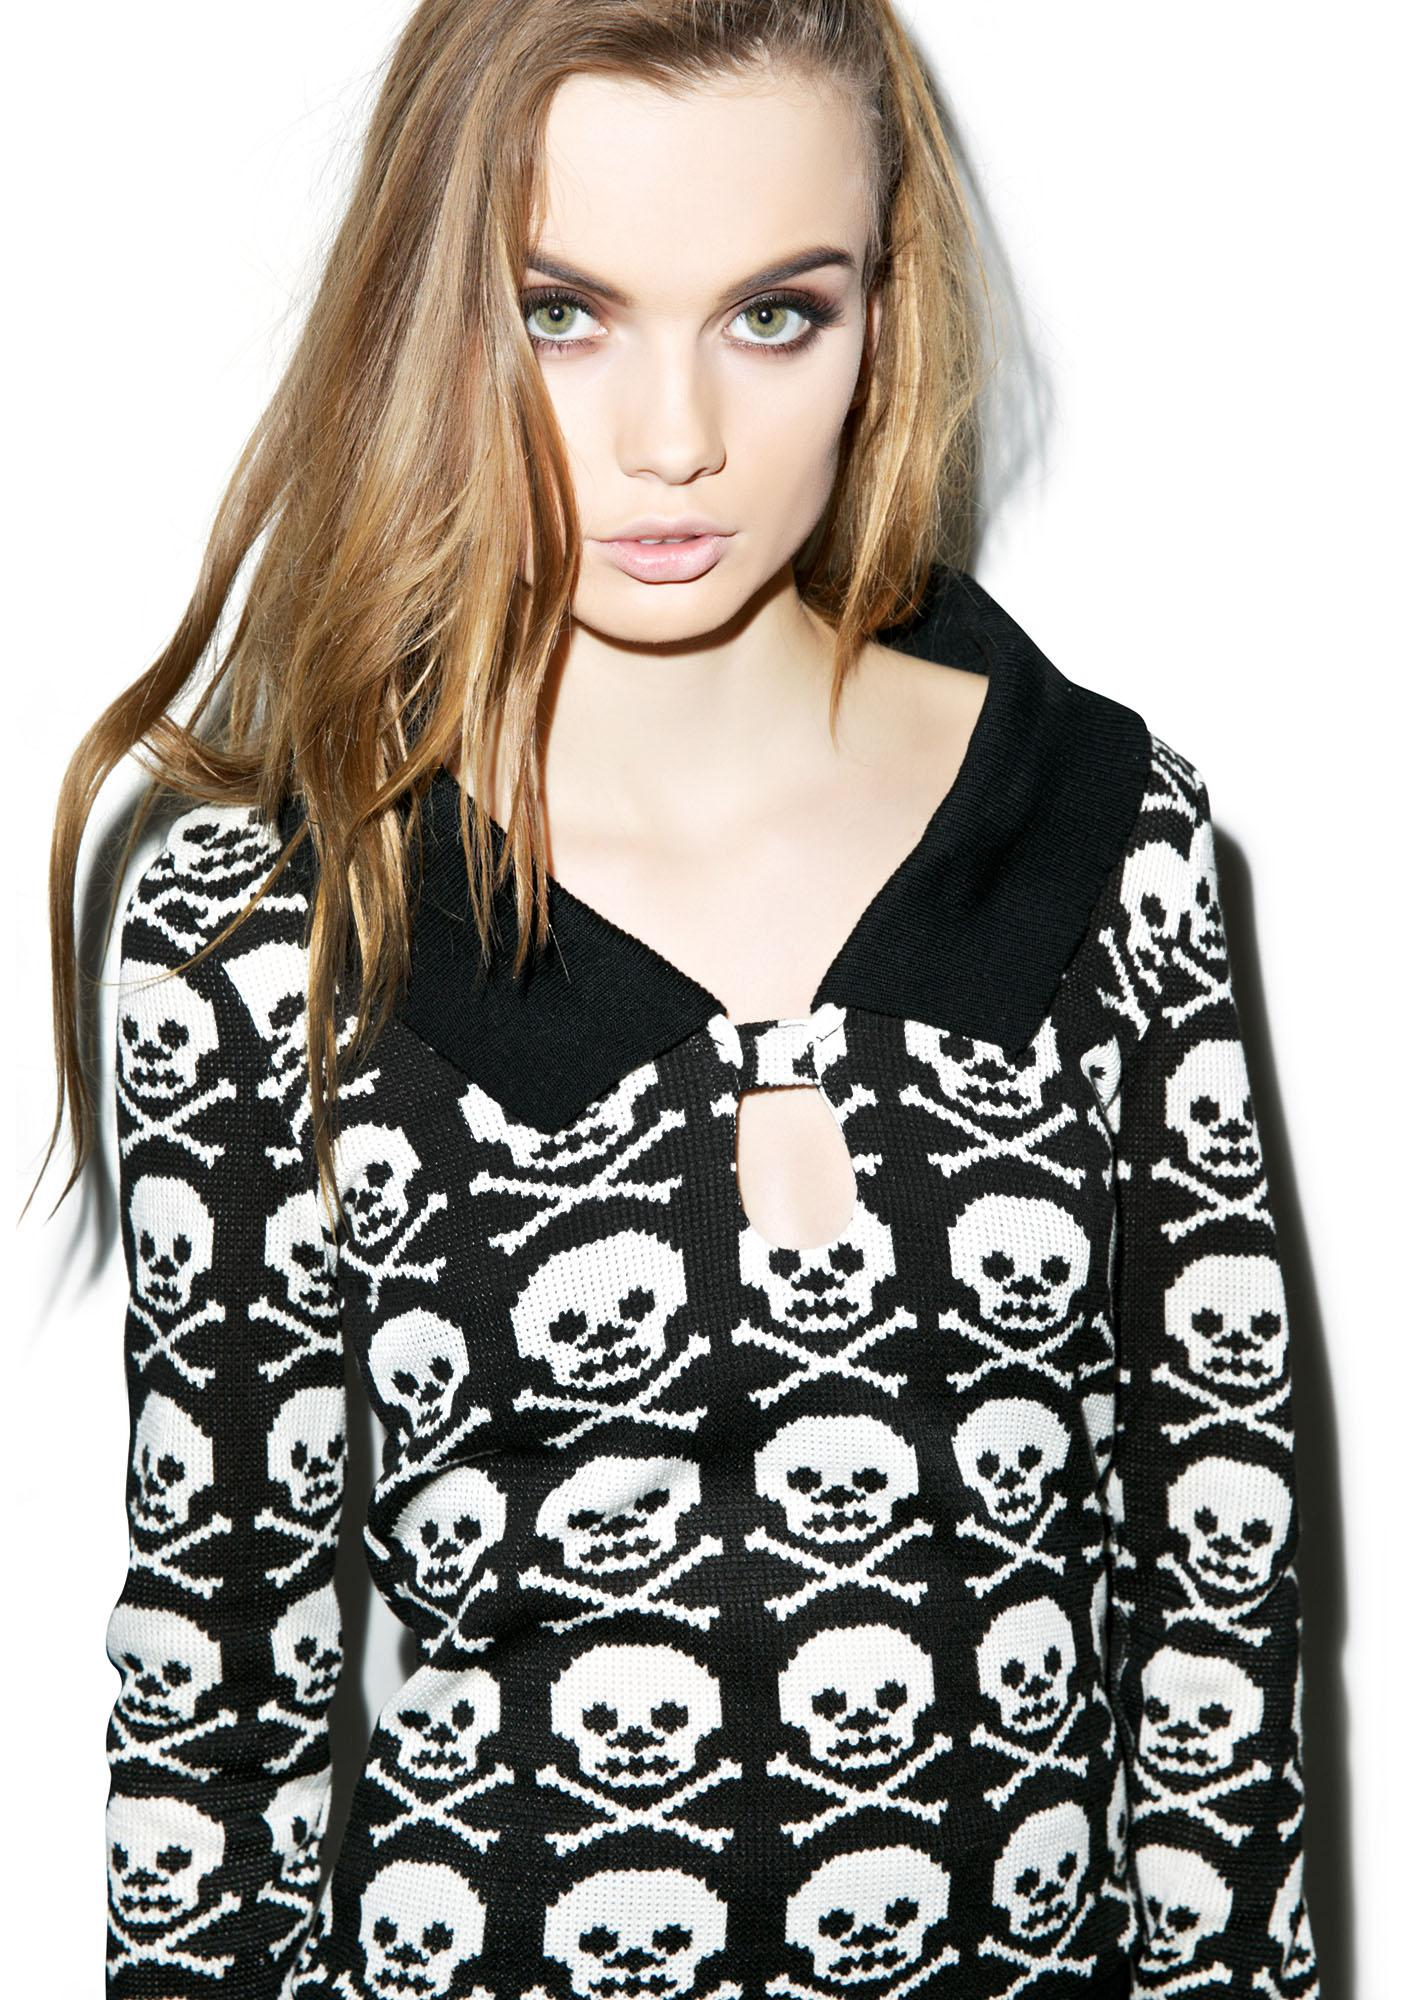 Skull N' Crossbonez Sweater